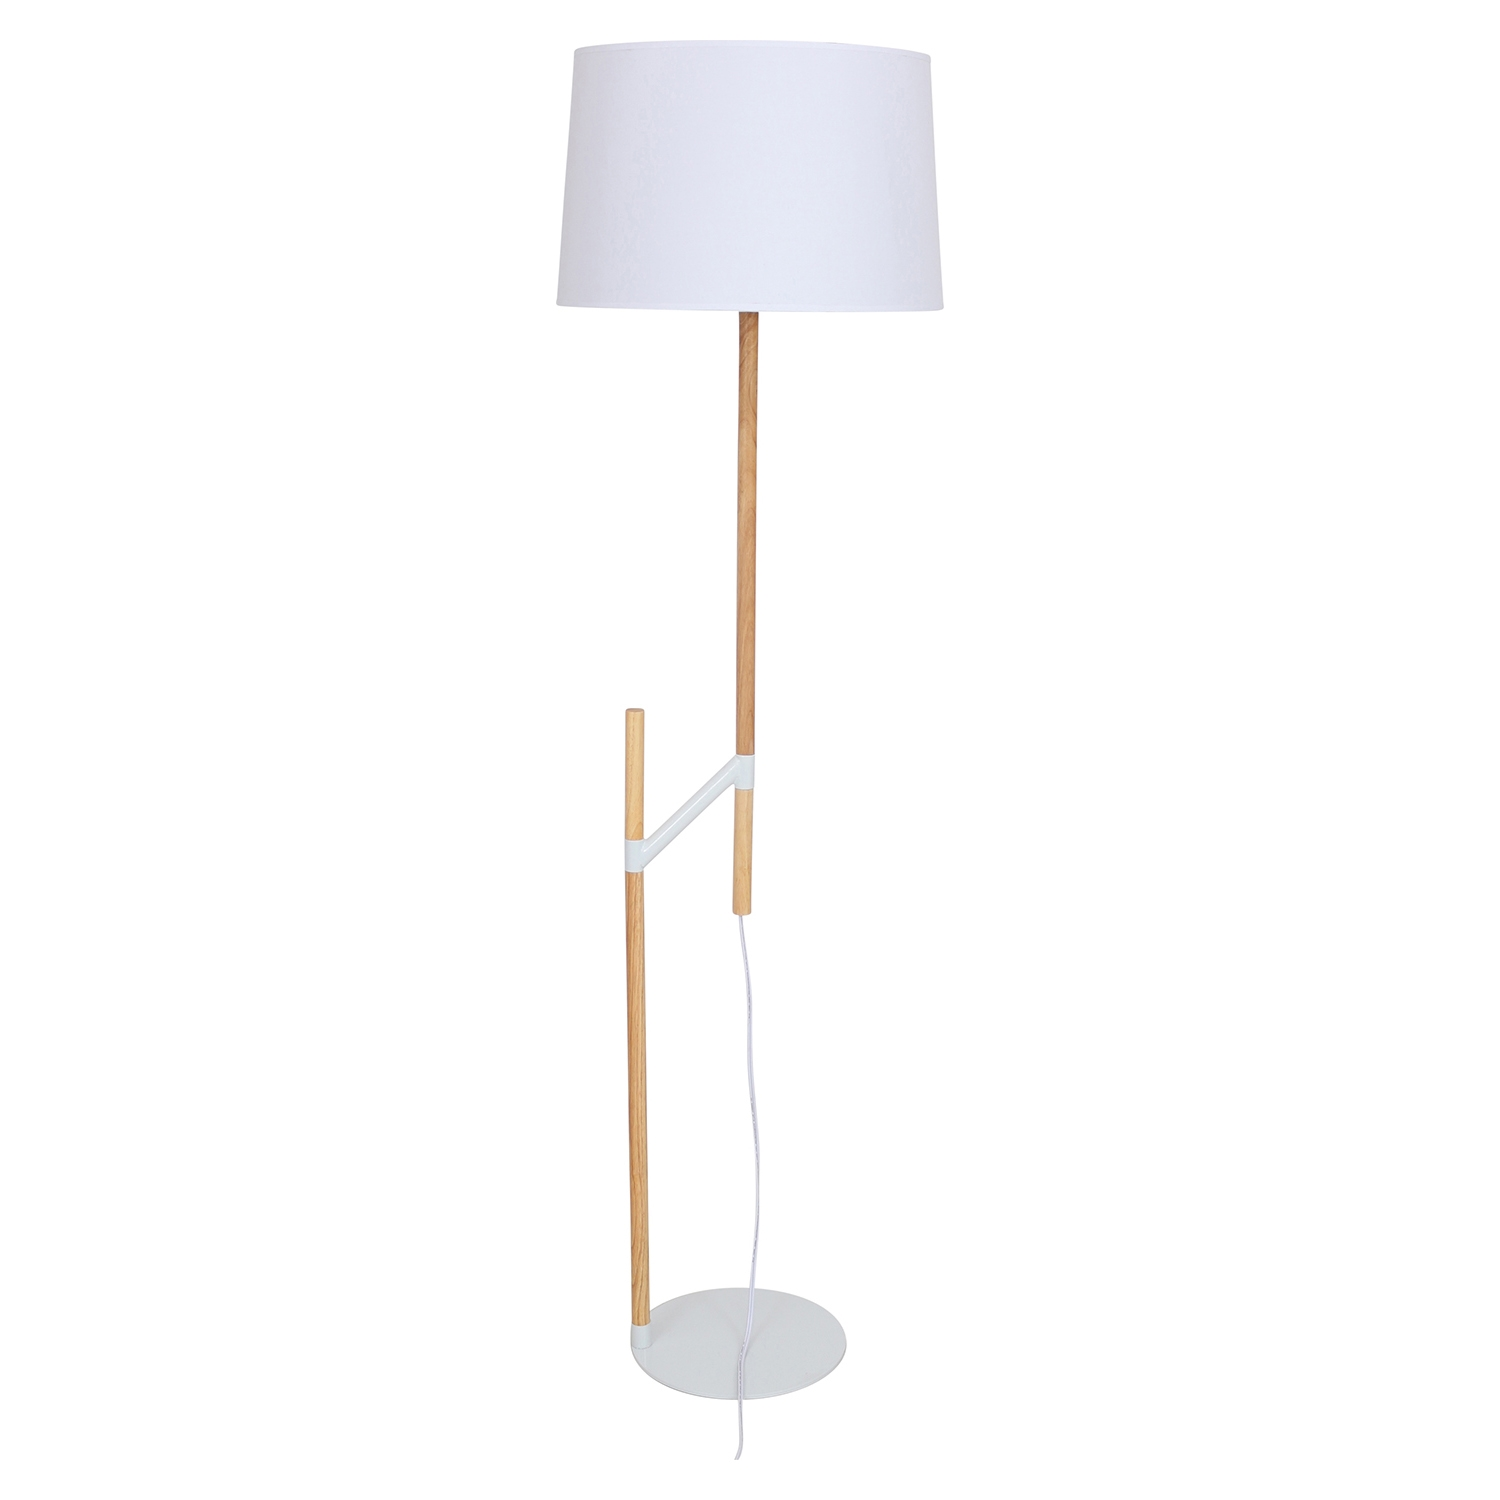 Raised Floor Lamp - Medium Brown, White - LMS-LS-L-RSDFL-BN-W